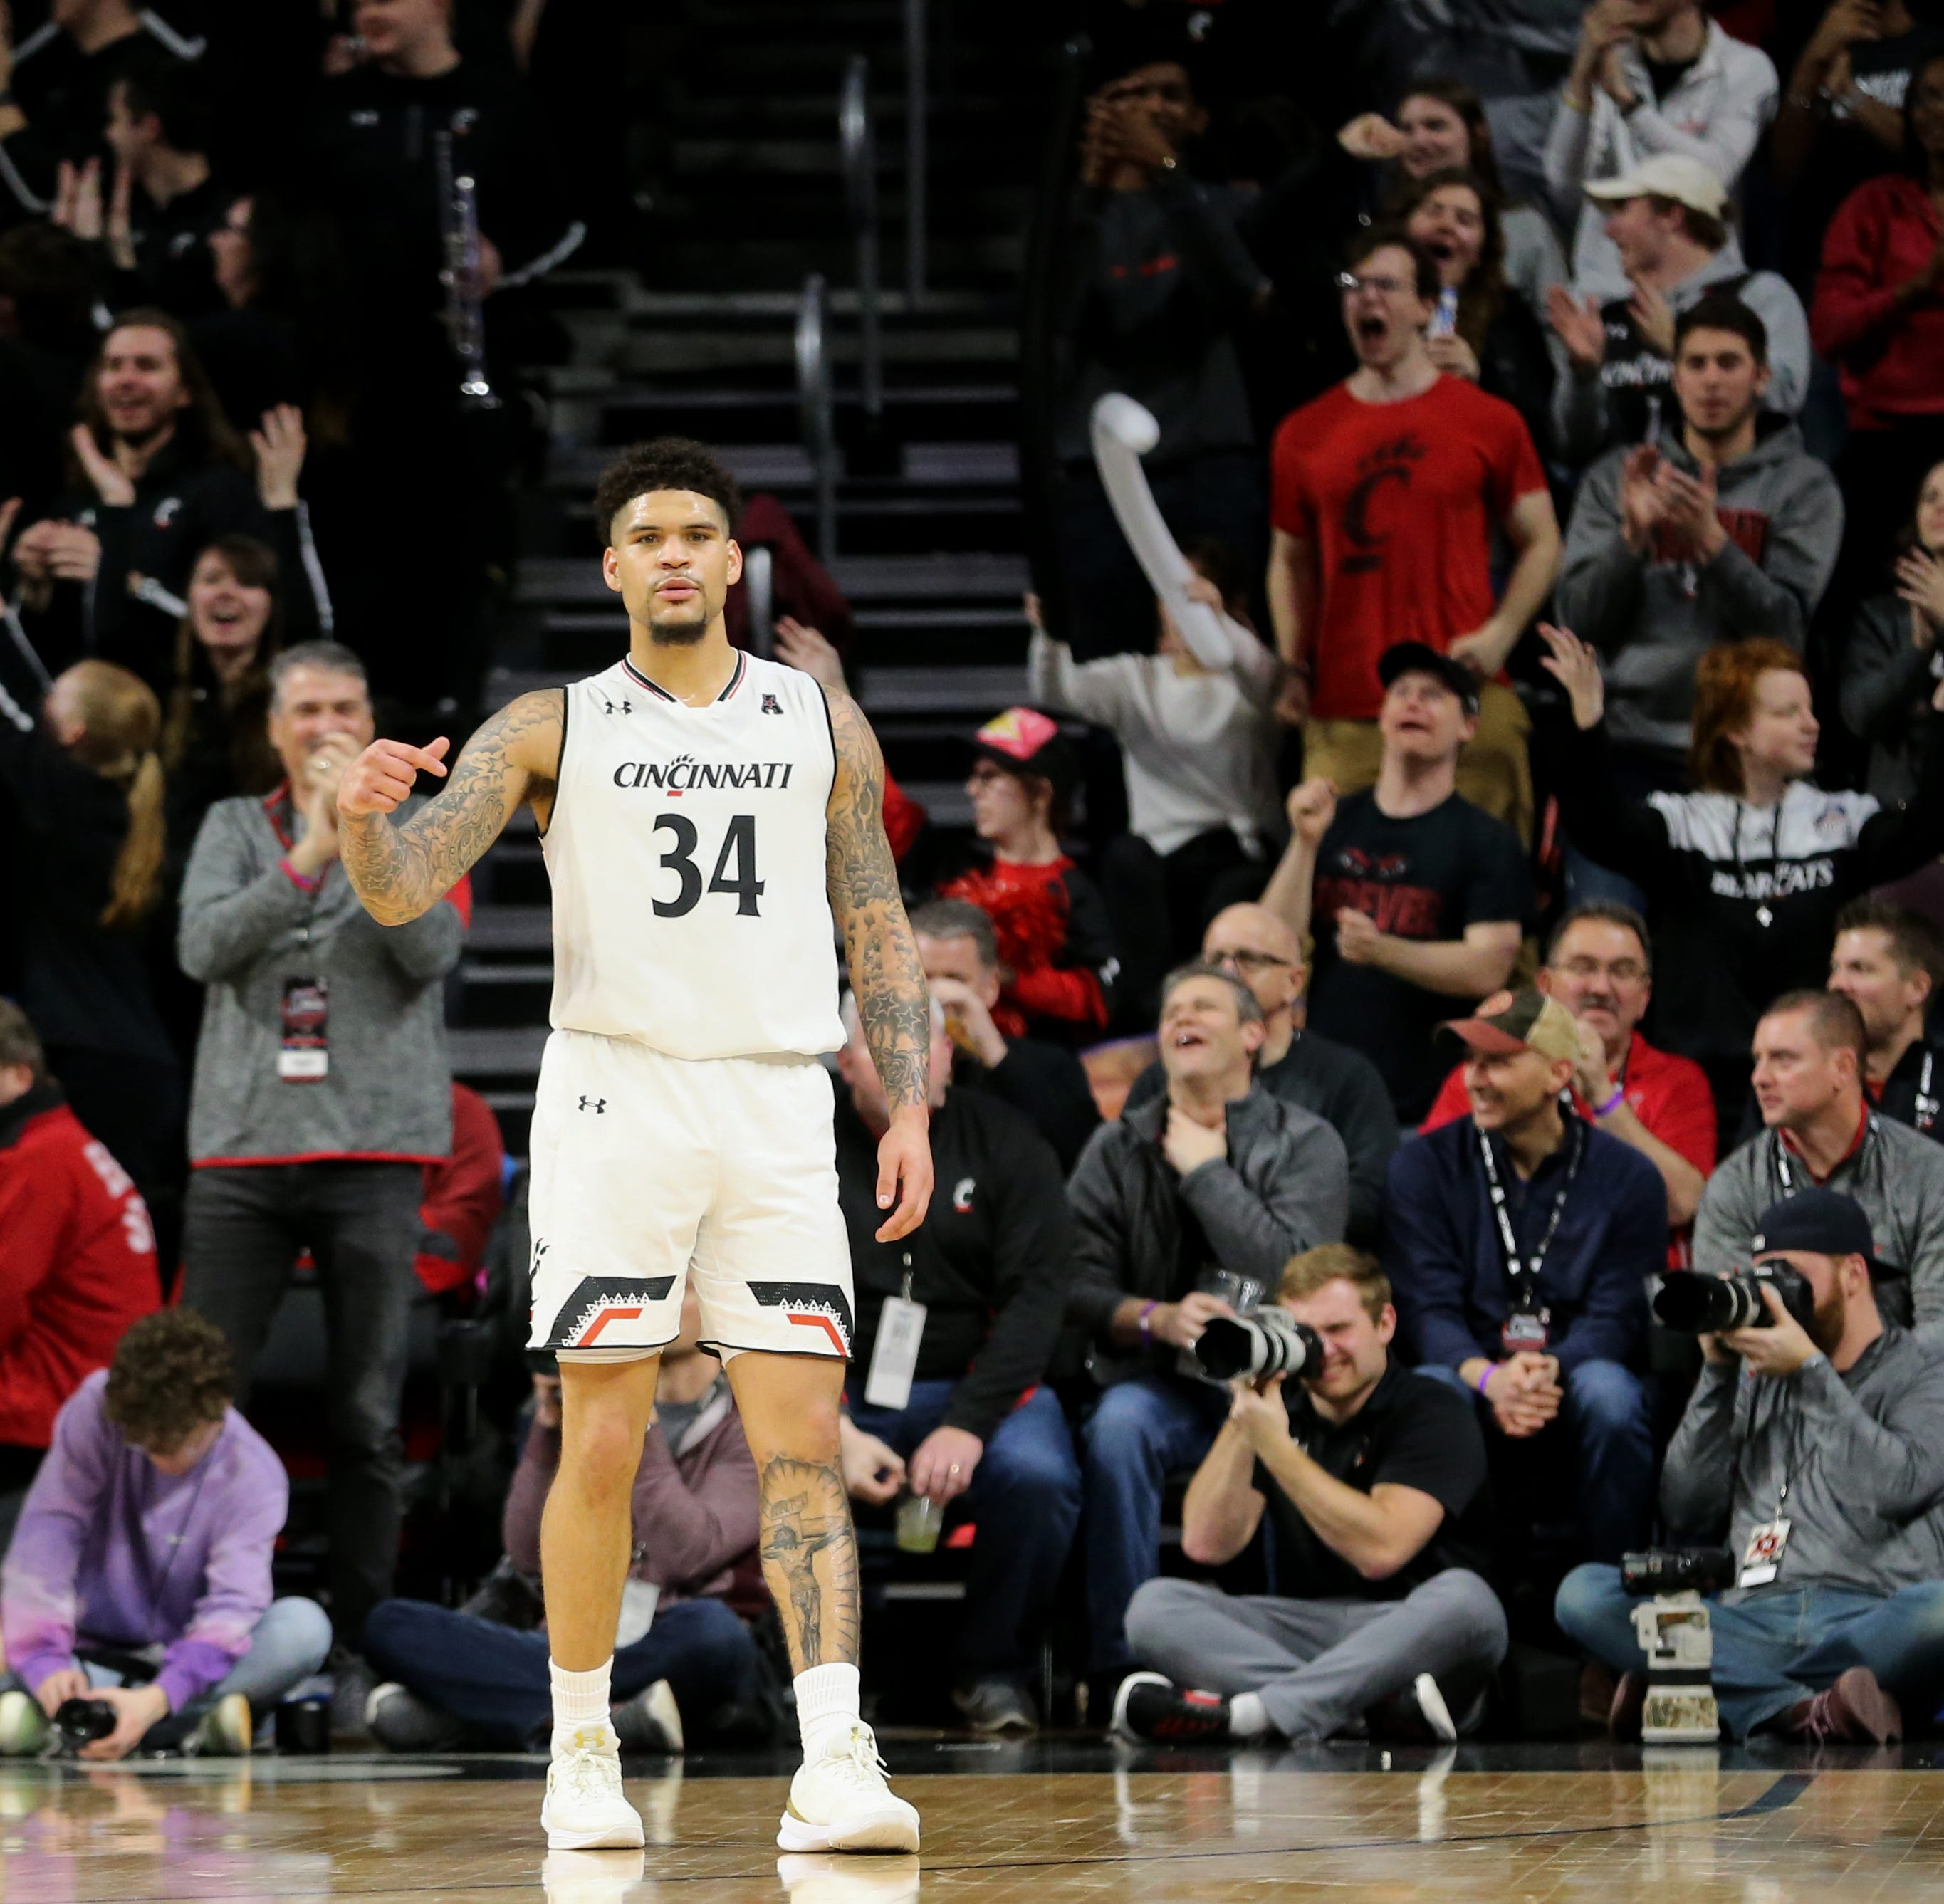 March Madness 2019: Live updates | Cincinnati Bearcats basketball vs. SMU in AAC tourney (UC leads 40-38 at half)